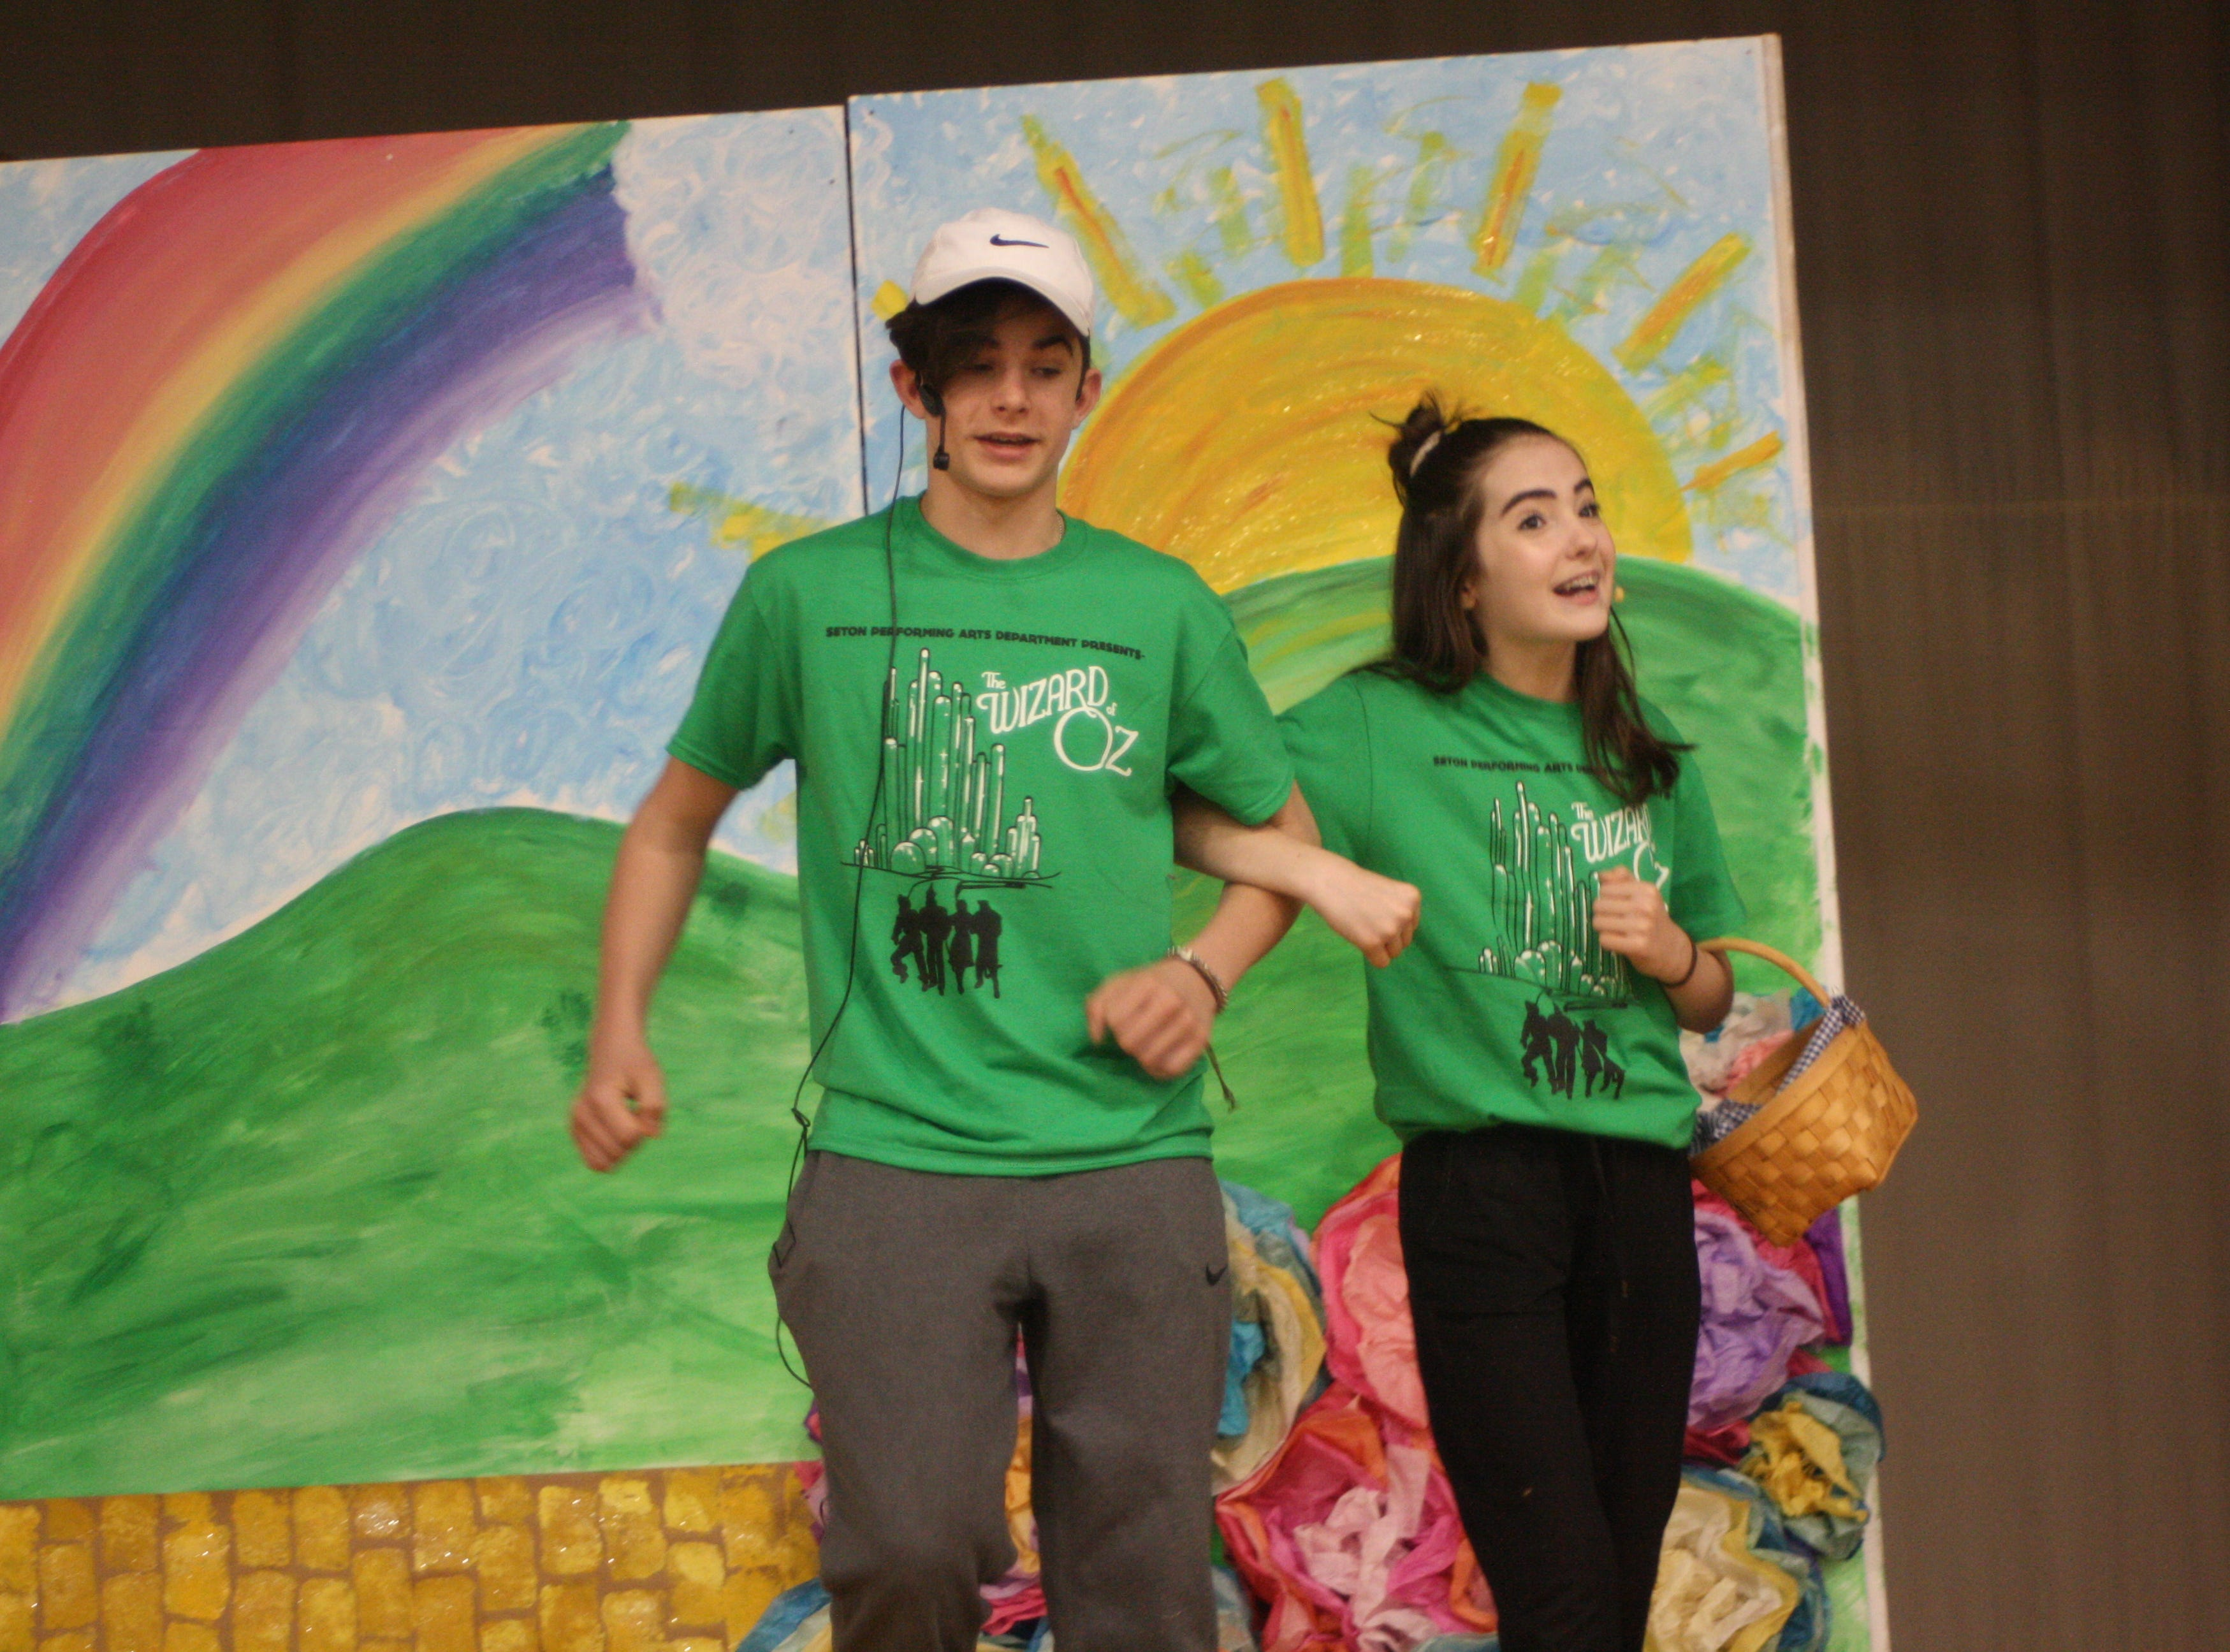 Students enrolled in the Catholic Schools of Broome County's middle and elementary schools rehearse for the upcoming production of 'The Wizard of Oz' on April 22. Every performance of the production will be interpreted for the deaf. Students also learned sign language to accompany each song in the show.